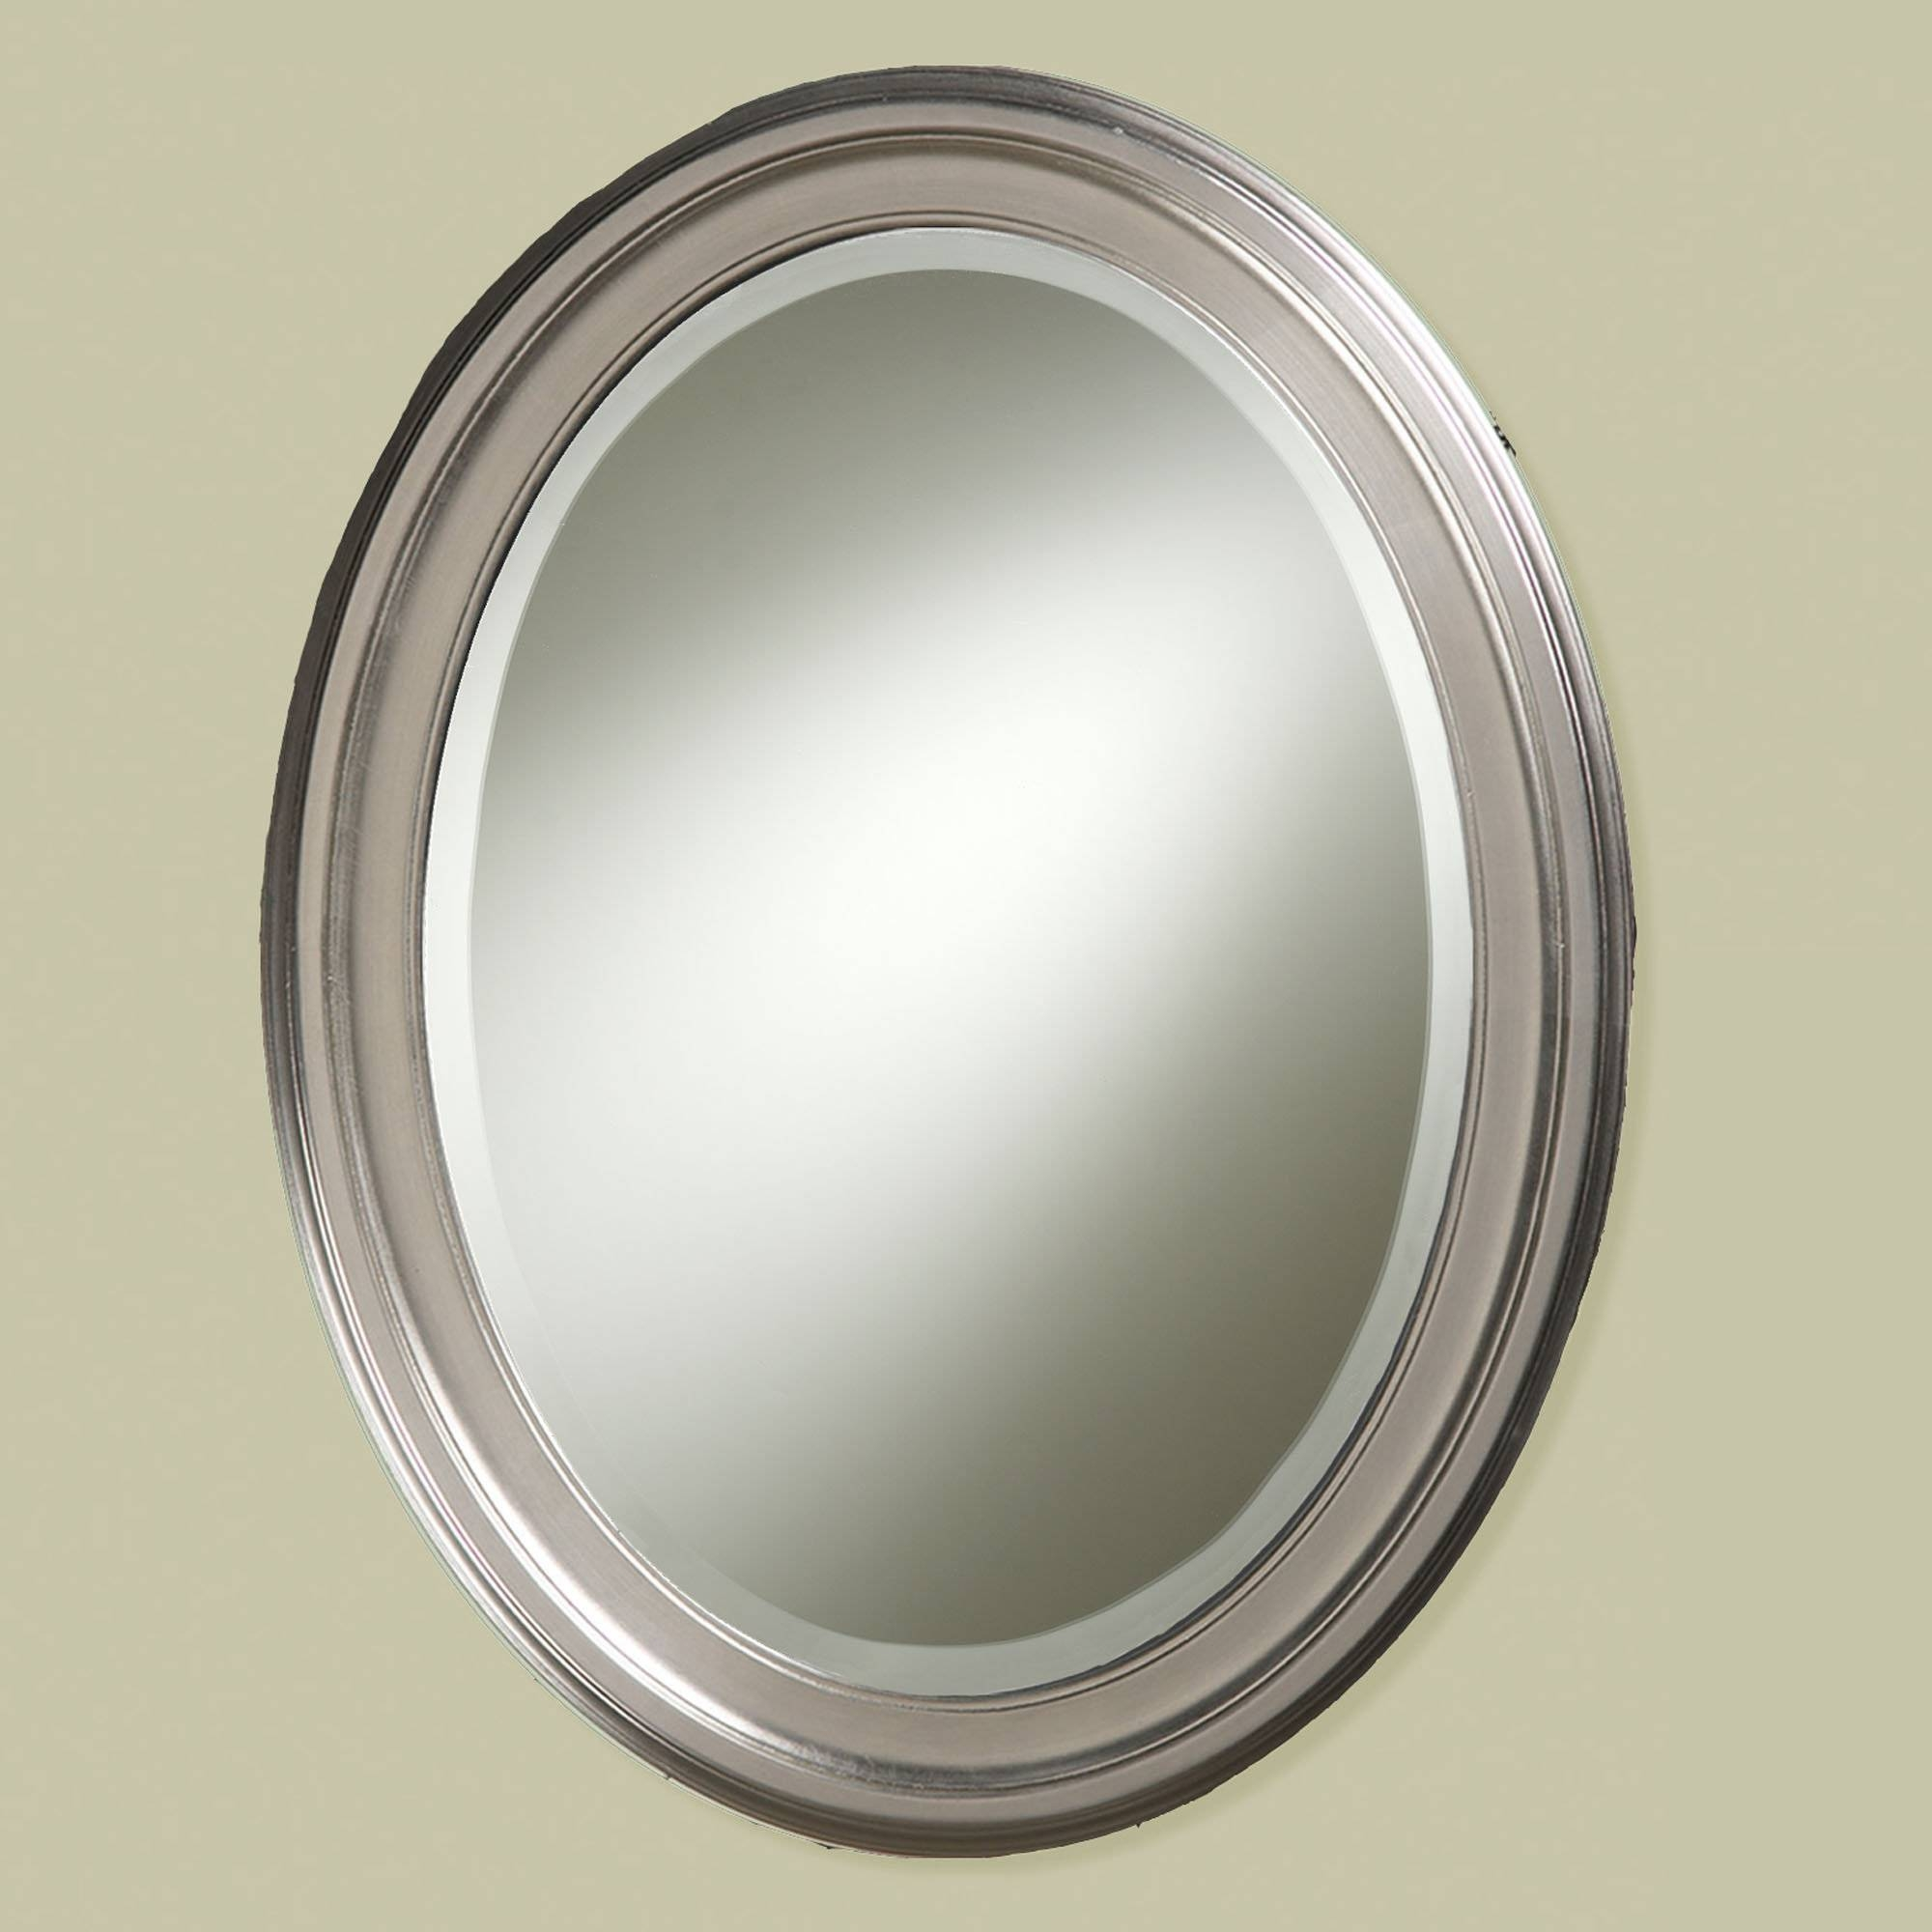 Bathroom: Bring A Touch Of Calm Elegance To Your Bathroom With for Large Oval Mirrors (Image 5 of 25)